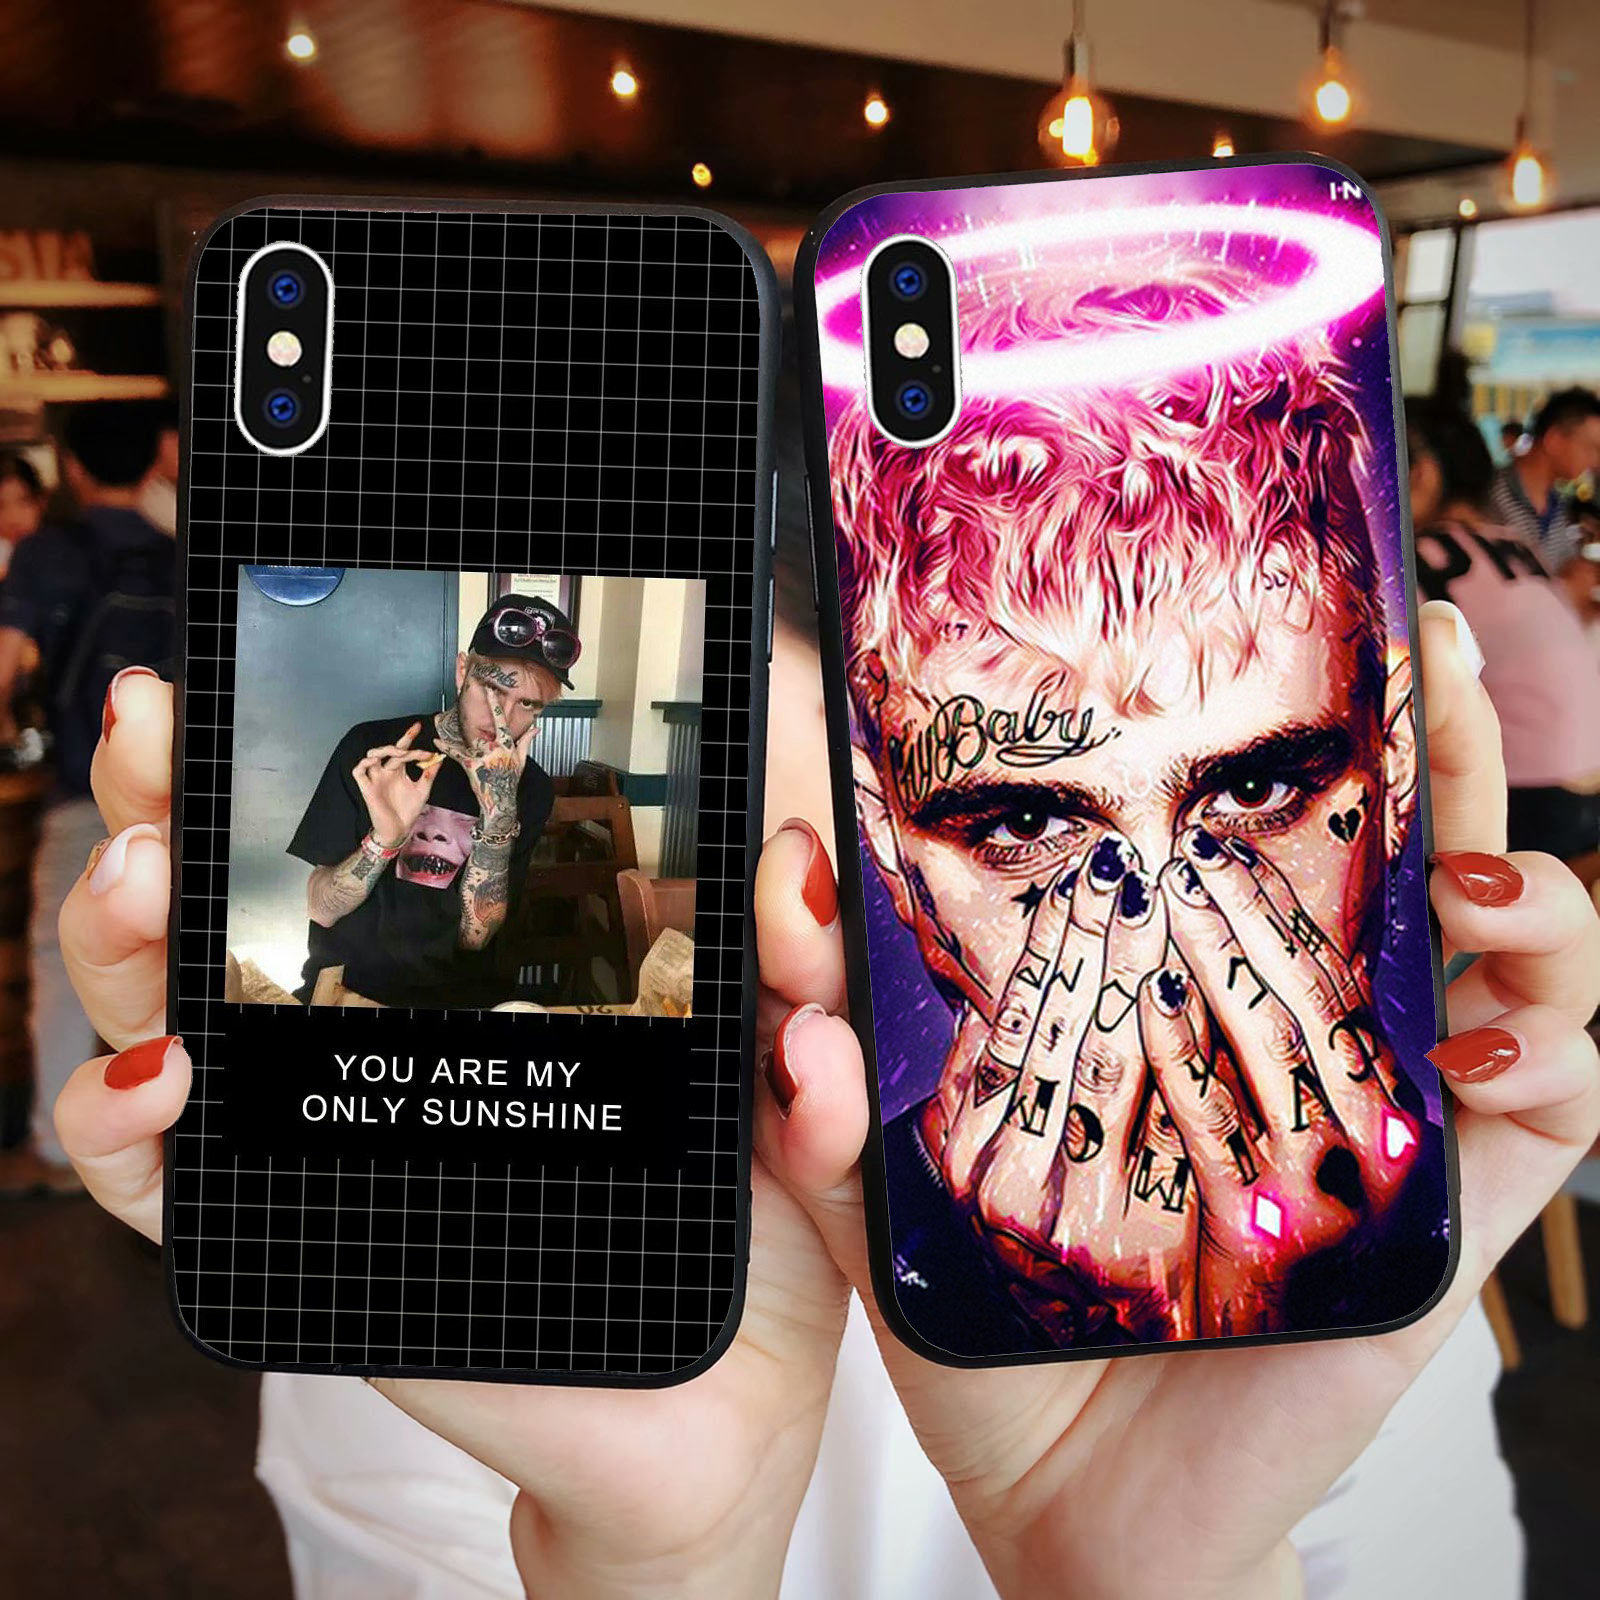 Fashion <font><b>Lil</b></font> <font><b>Peep</b></font> hellboy Life is Beautiful Cry Baby Soft TPU Cover Phone <font><b>Case</b></font> for <font><b>iPhone</b></font> X 5 5S 6S 11 PRO MAX <font><b>8</b></font> Plus XR XS MAX image